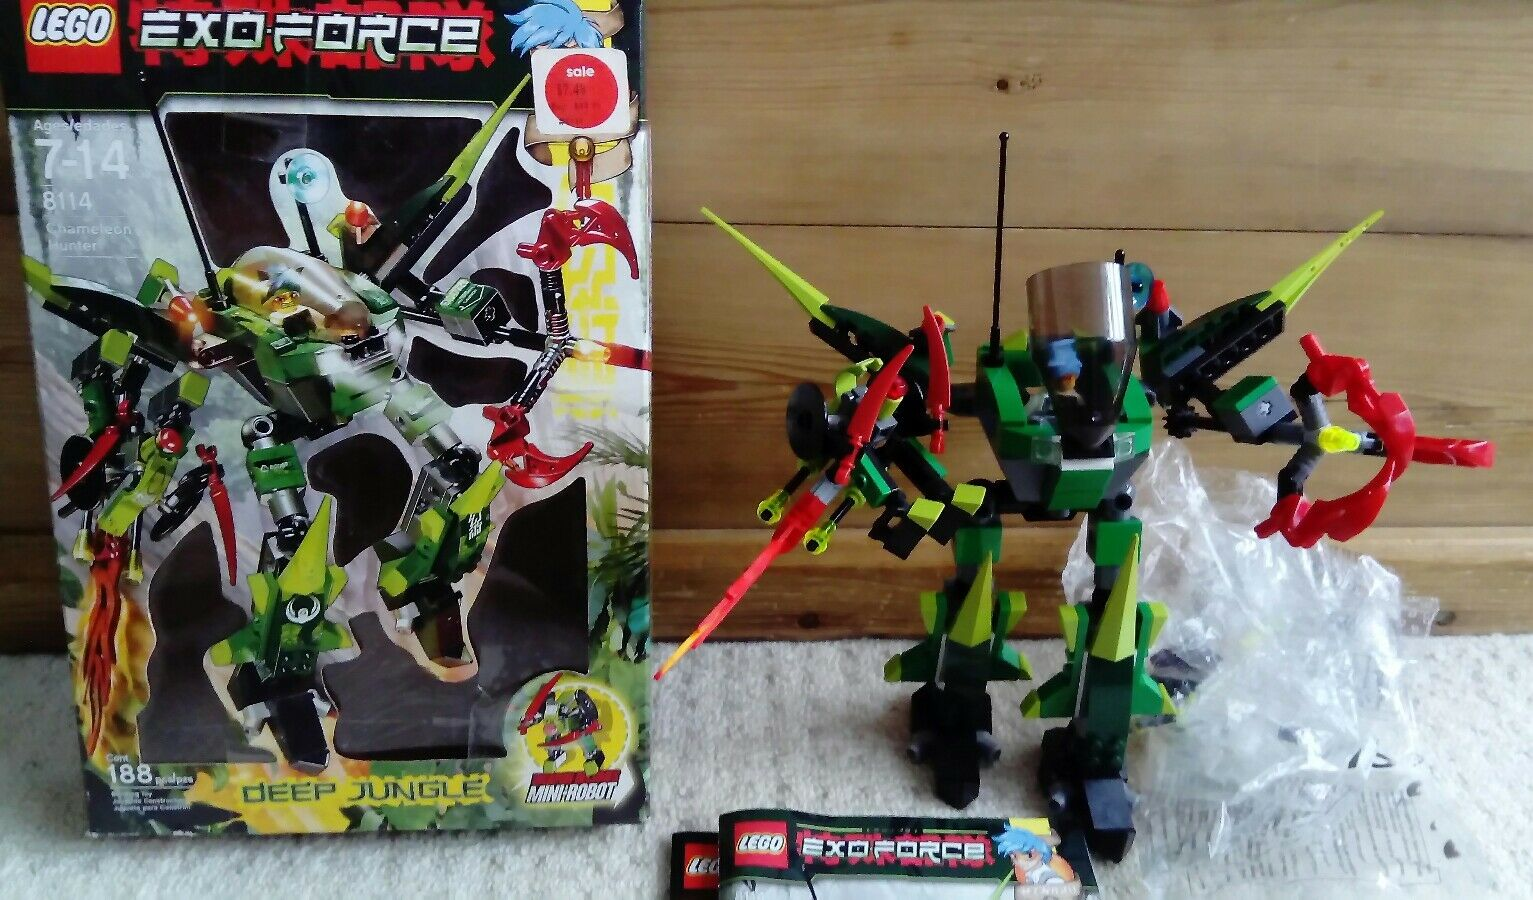 Lego Exo-Force 8114 Chameleon Hunter - Deep Jungle Missing 1 small piece